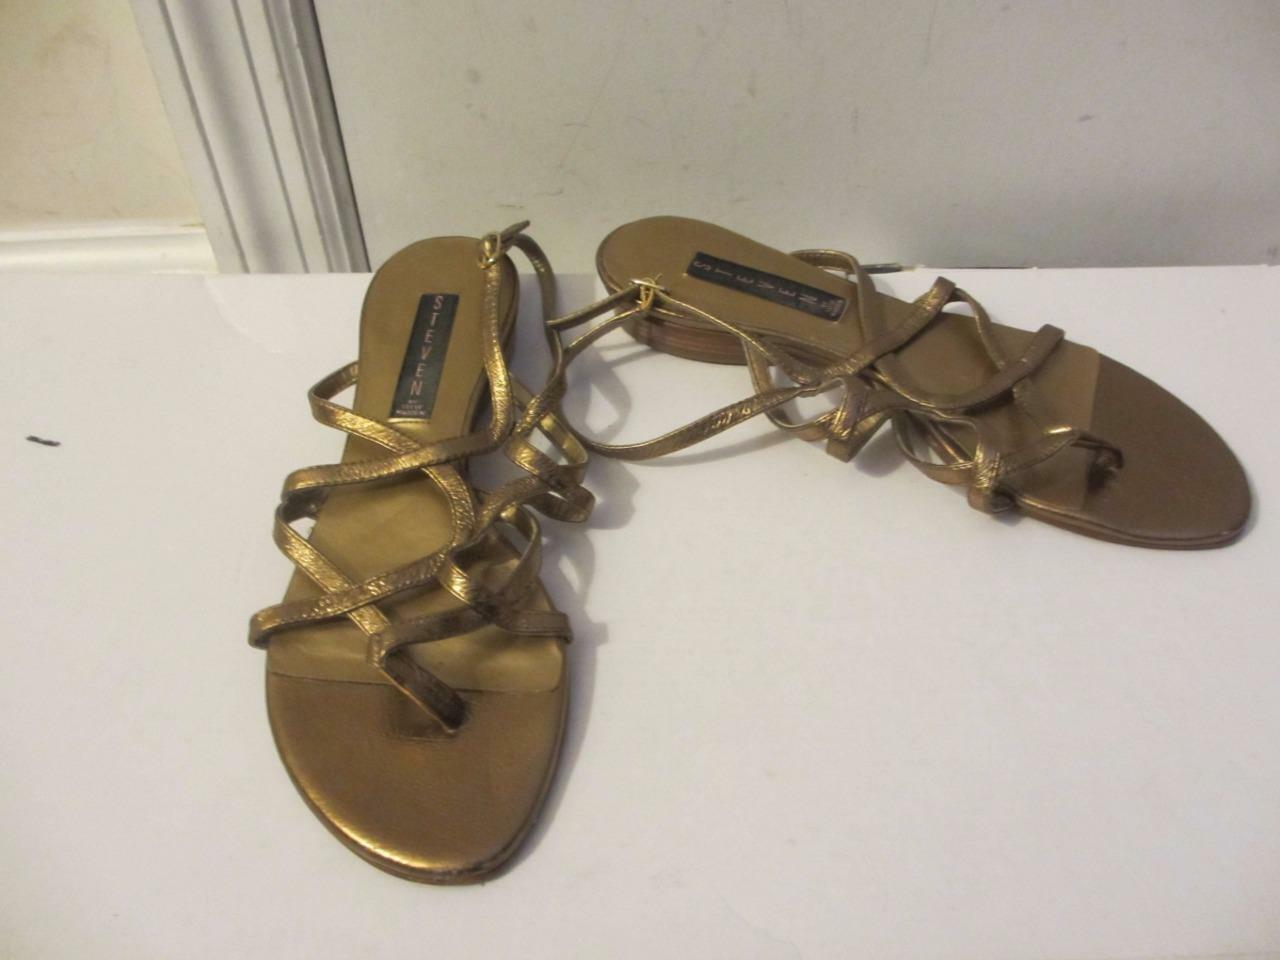 WOMENS STEVEN MADDEN BRONZE STRAPPY - LEATHER SANDALS WITH BUCKLE - STRAPPY SIZE 8.5M 51f6cc